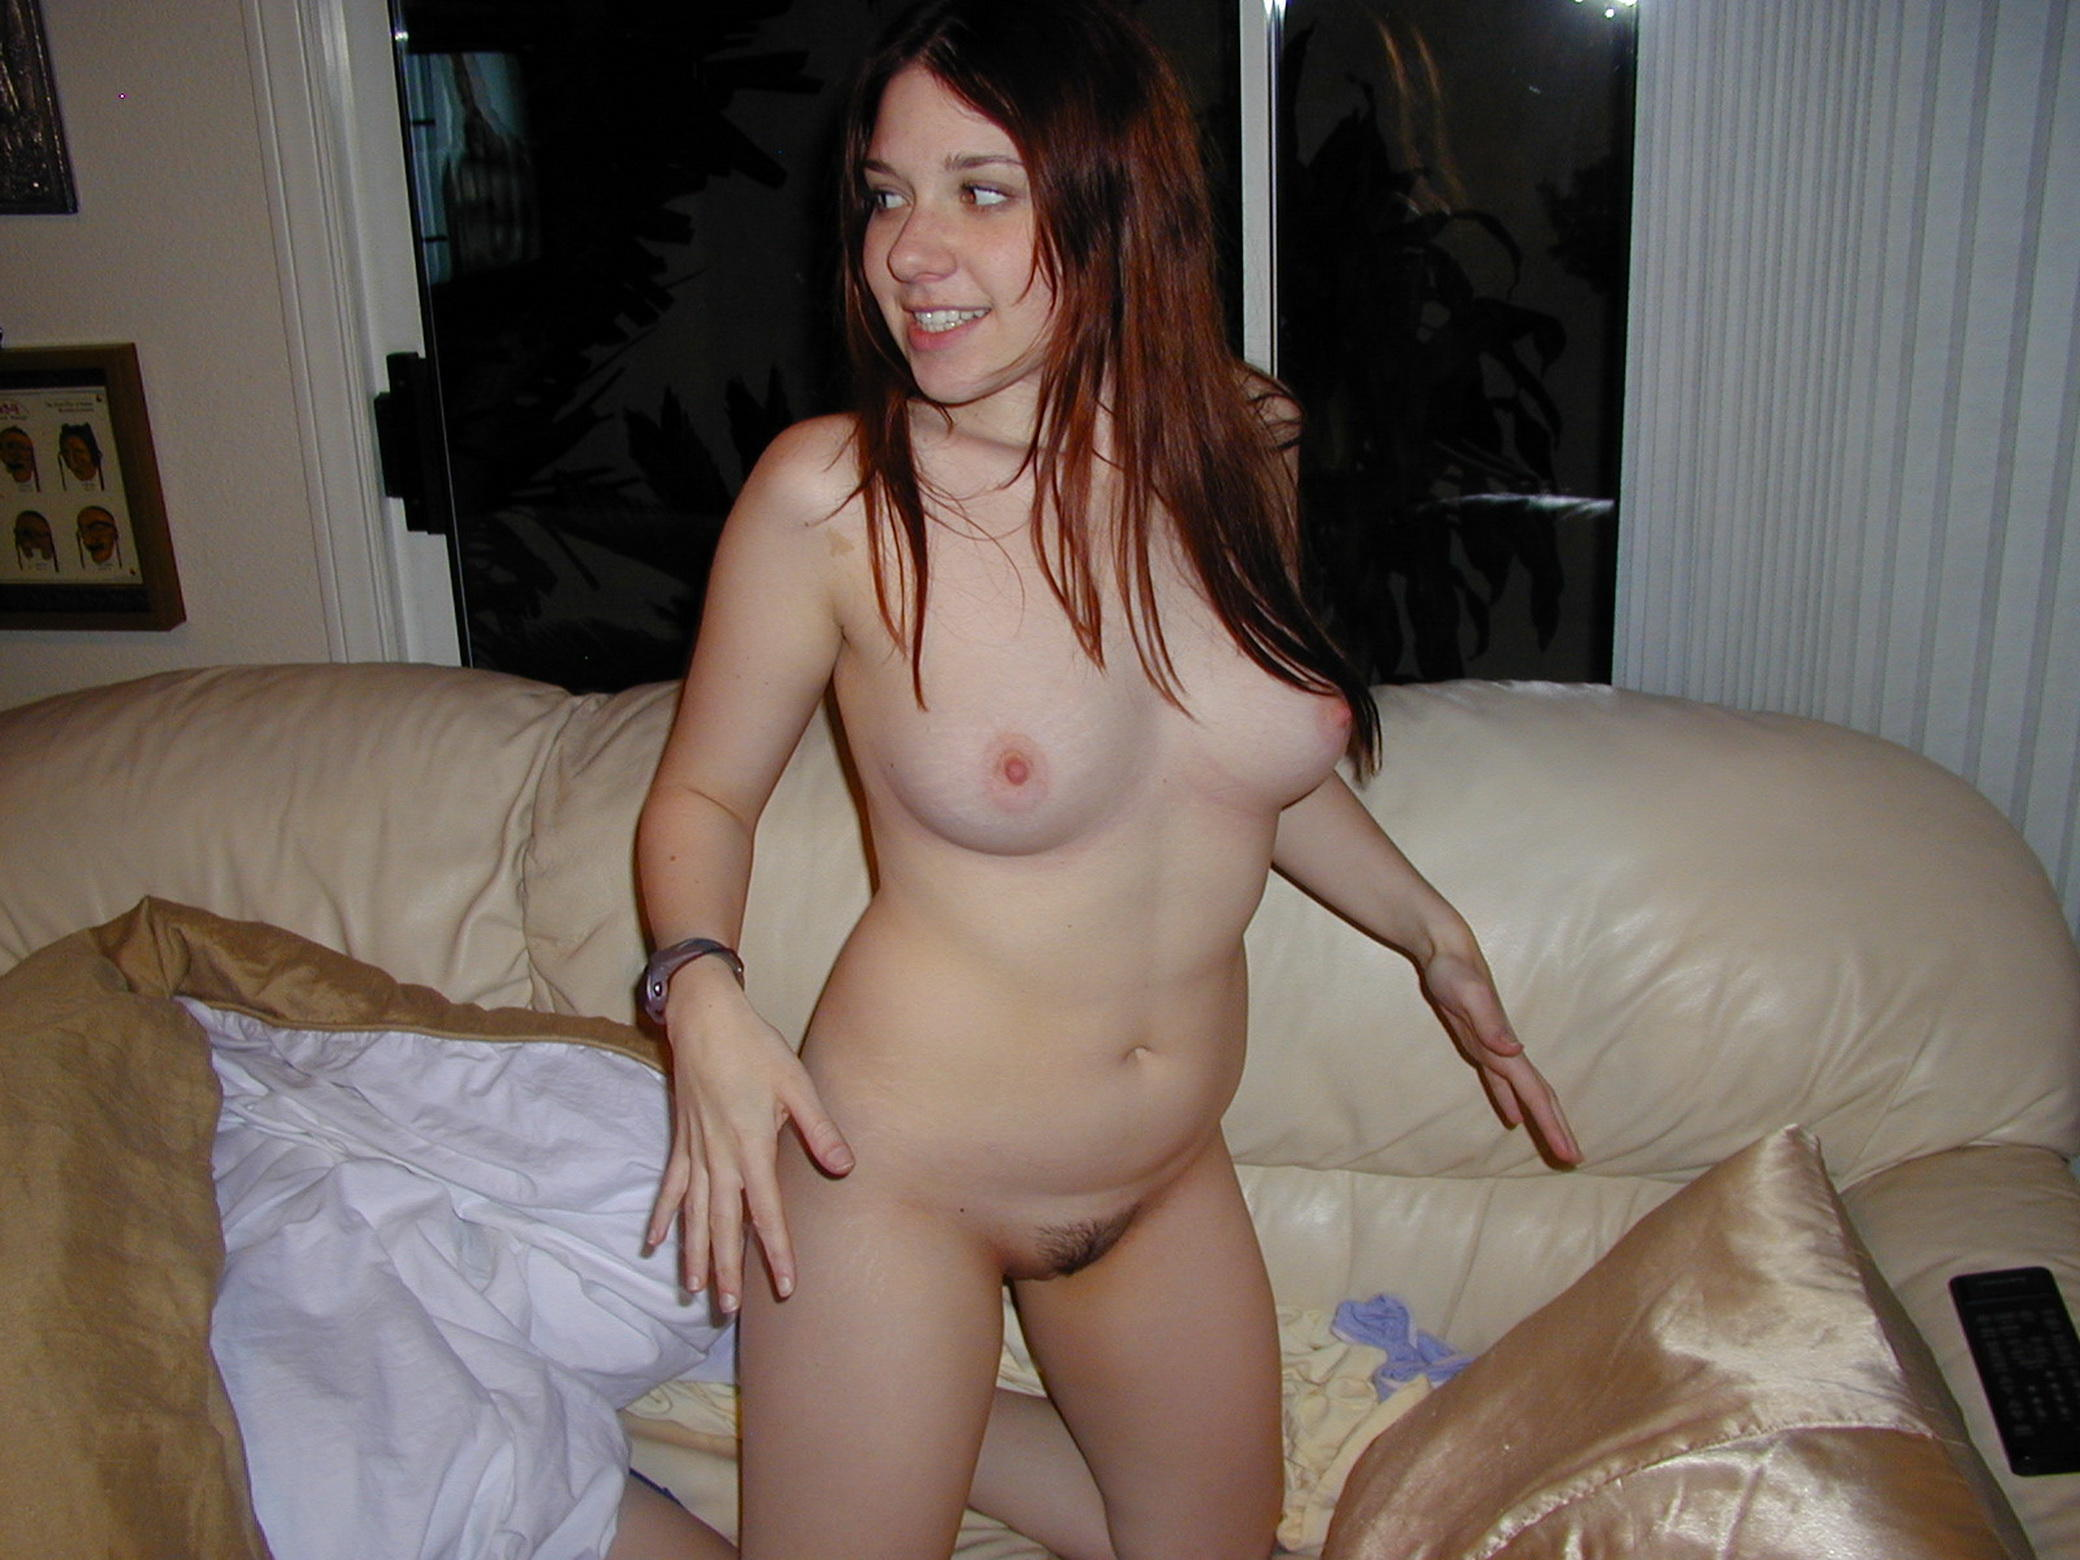 Girls, naked women, real sex pictures,